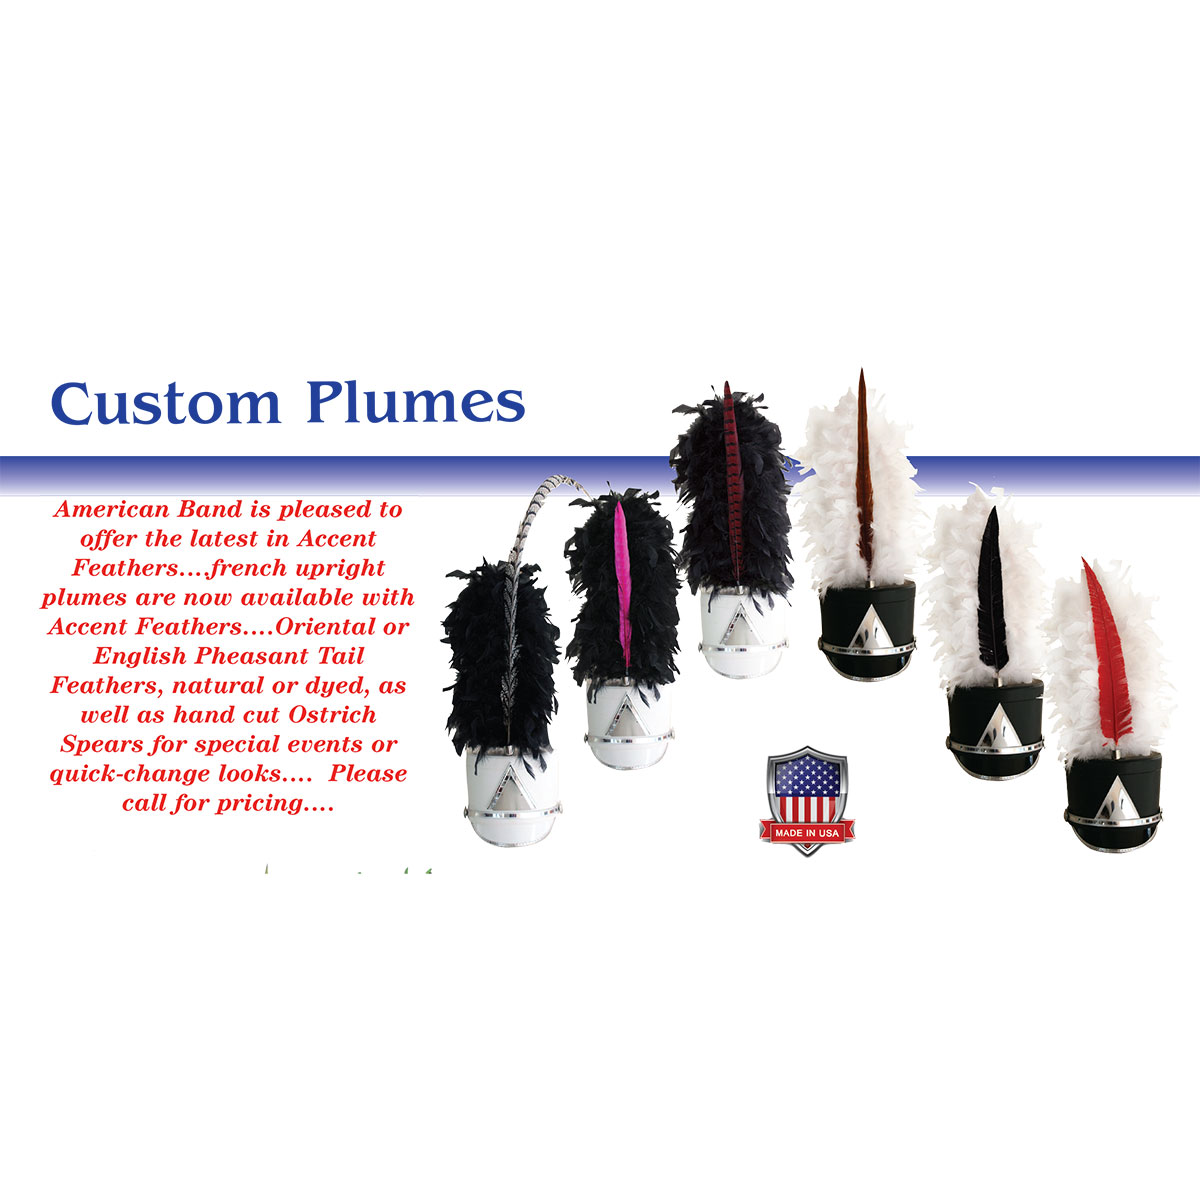 Plumes: Accent Feathers